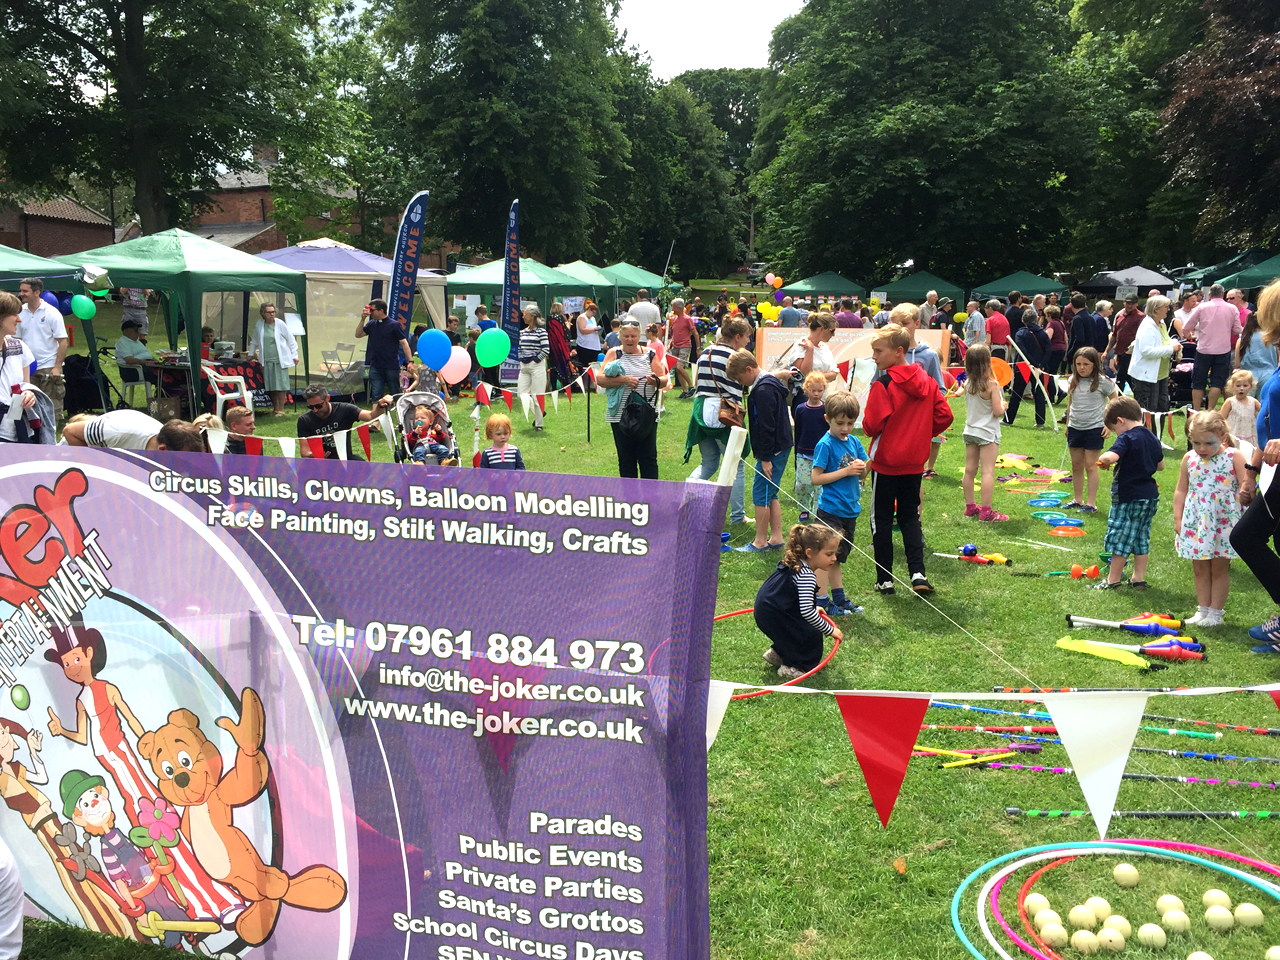 The Joker entertainment providing circus workshops and participation activities and walkabout entertainment at family fun days, play days and carnivals for summer entertainemnt